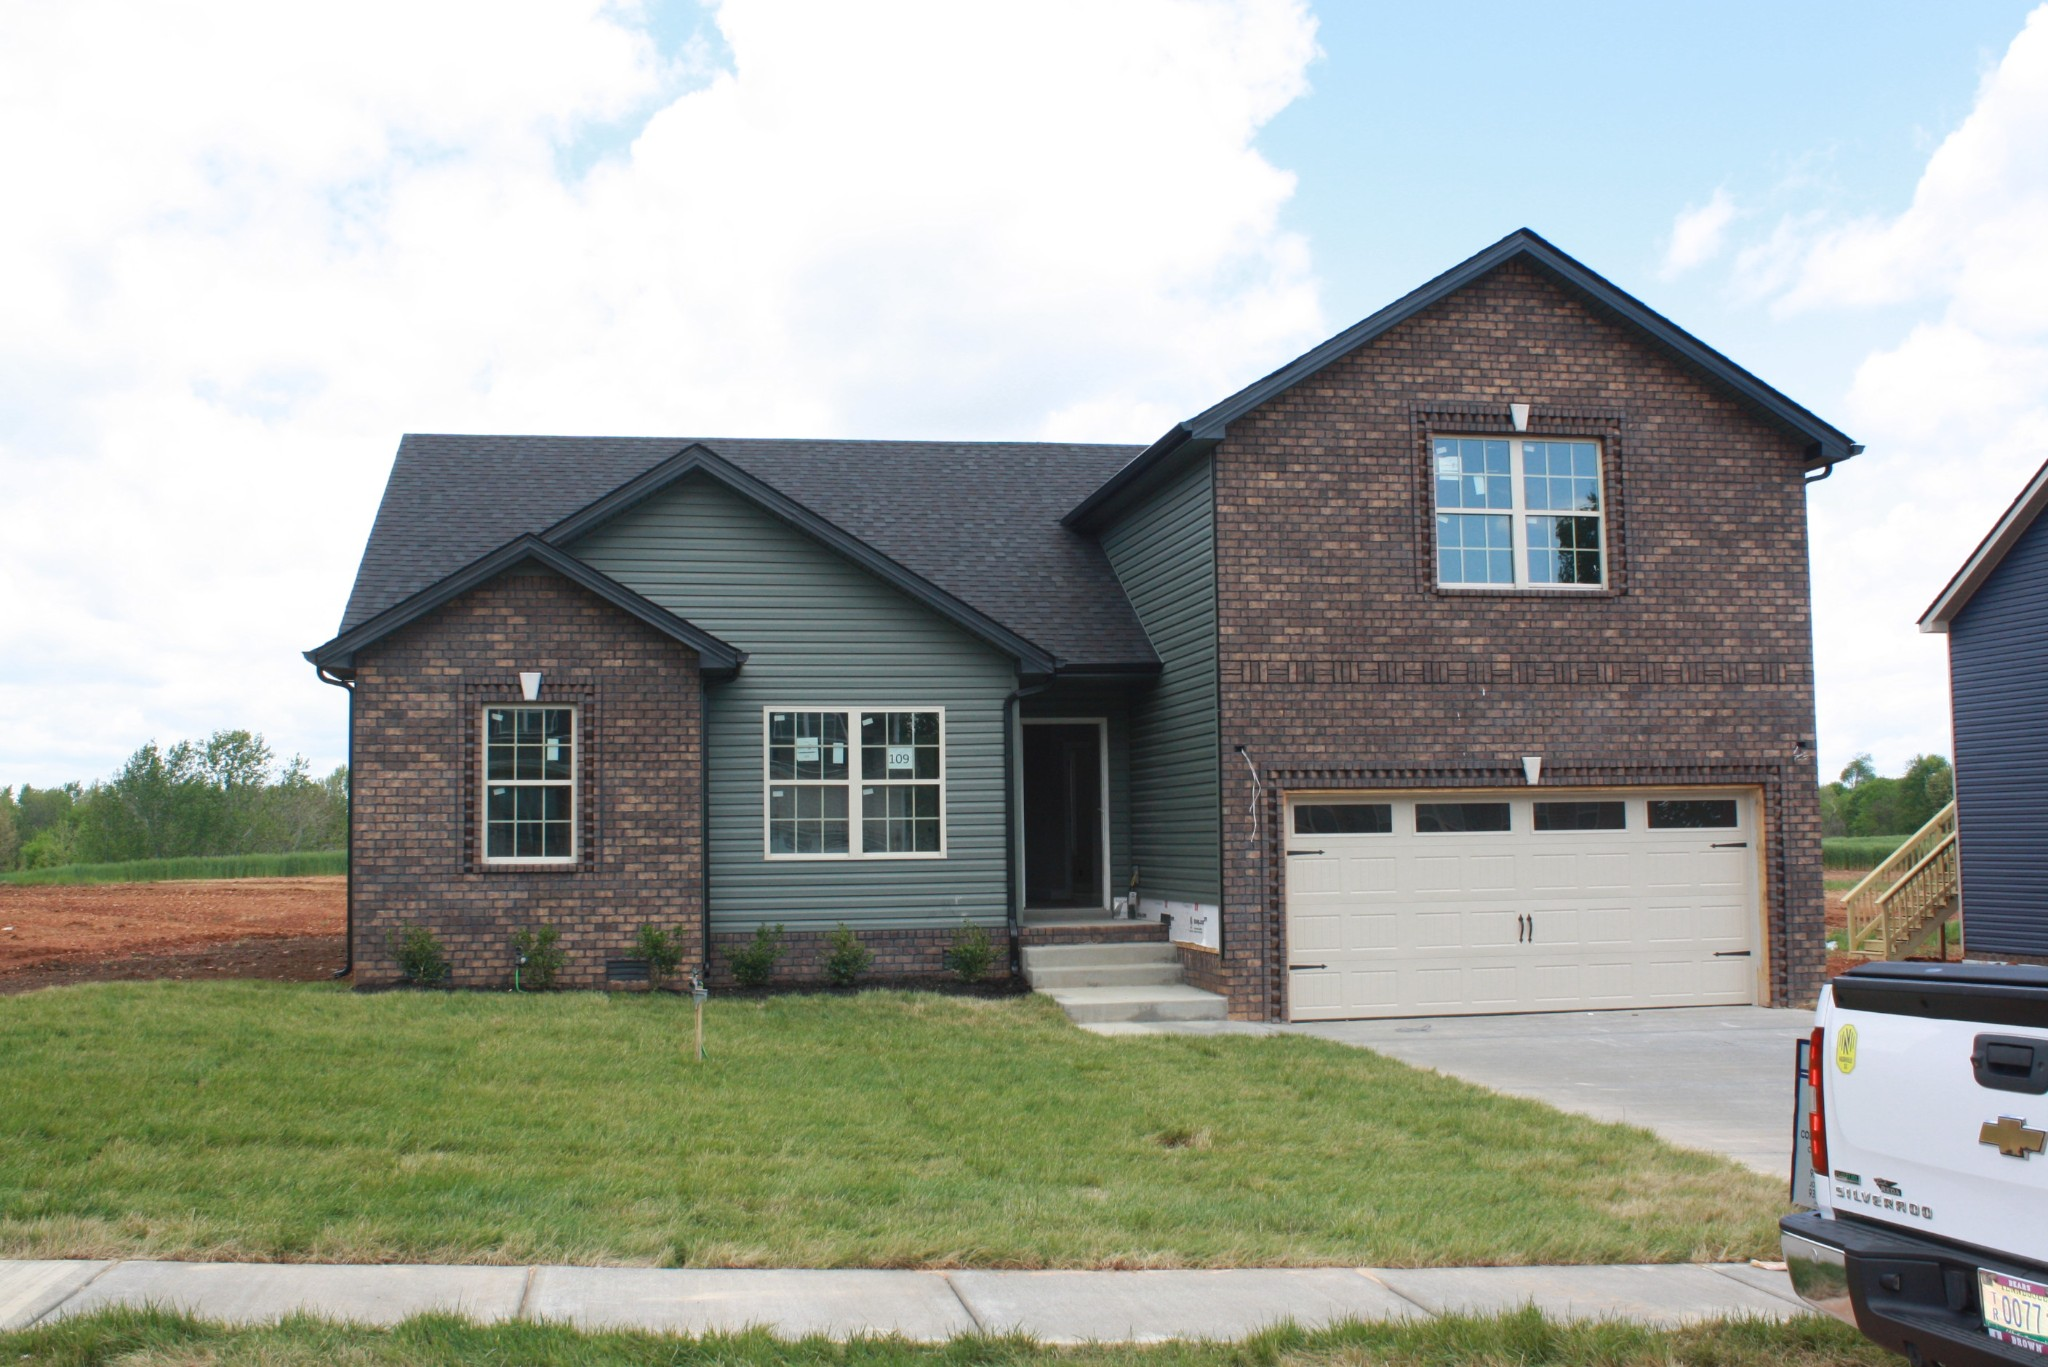 109 Anderson Place, Clarksville, TN 37042 - Clarksville, TN real estate listing